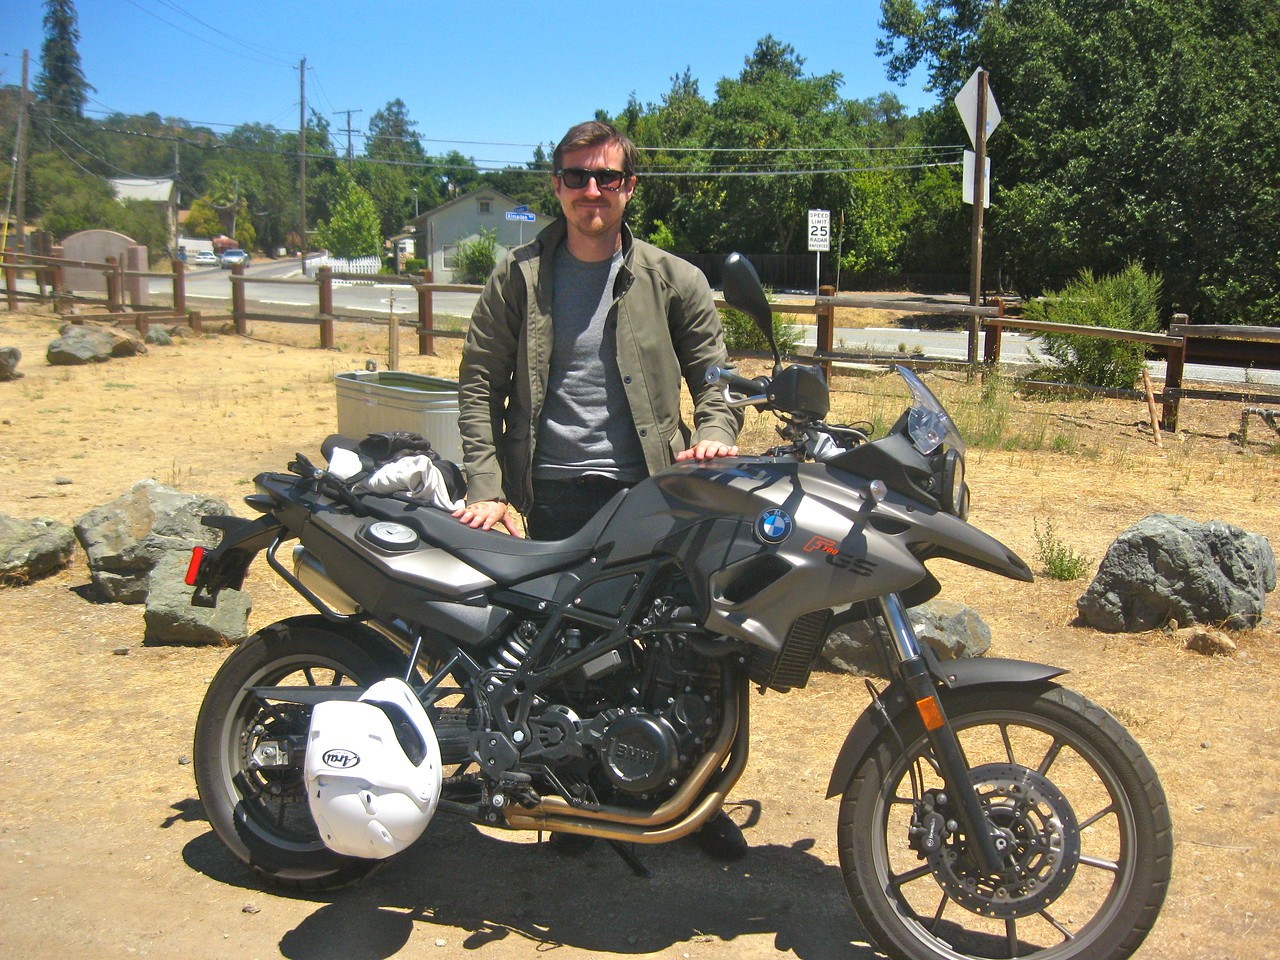 Wes Umner and his F700GS.